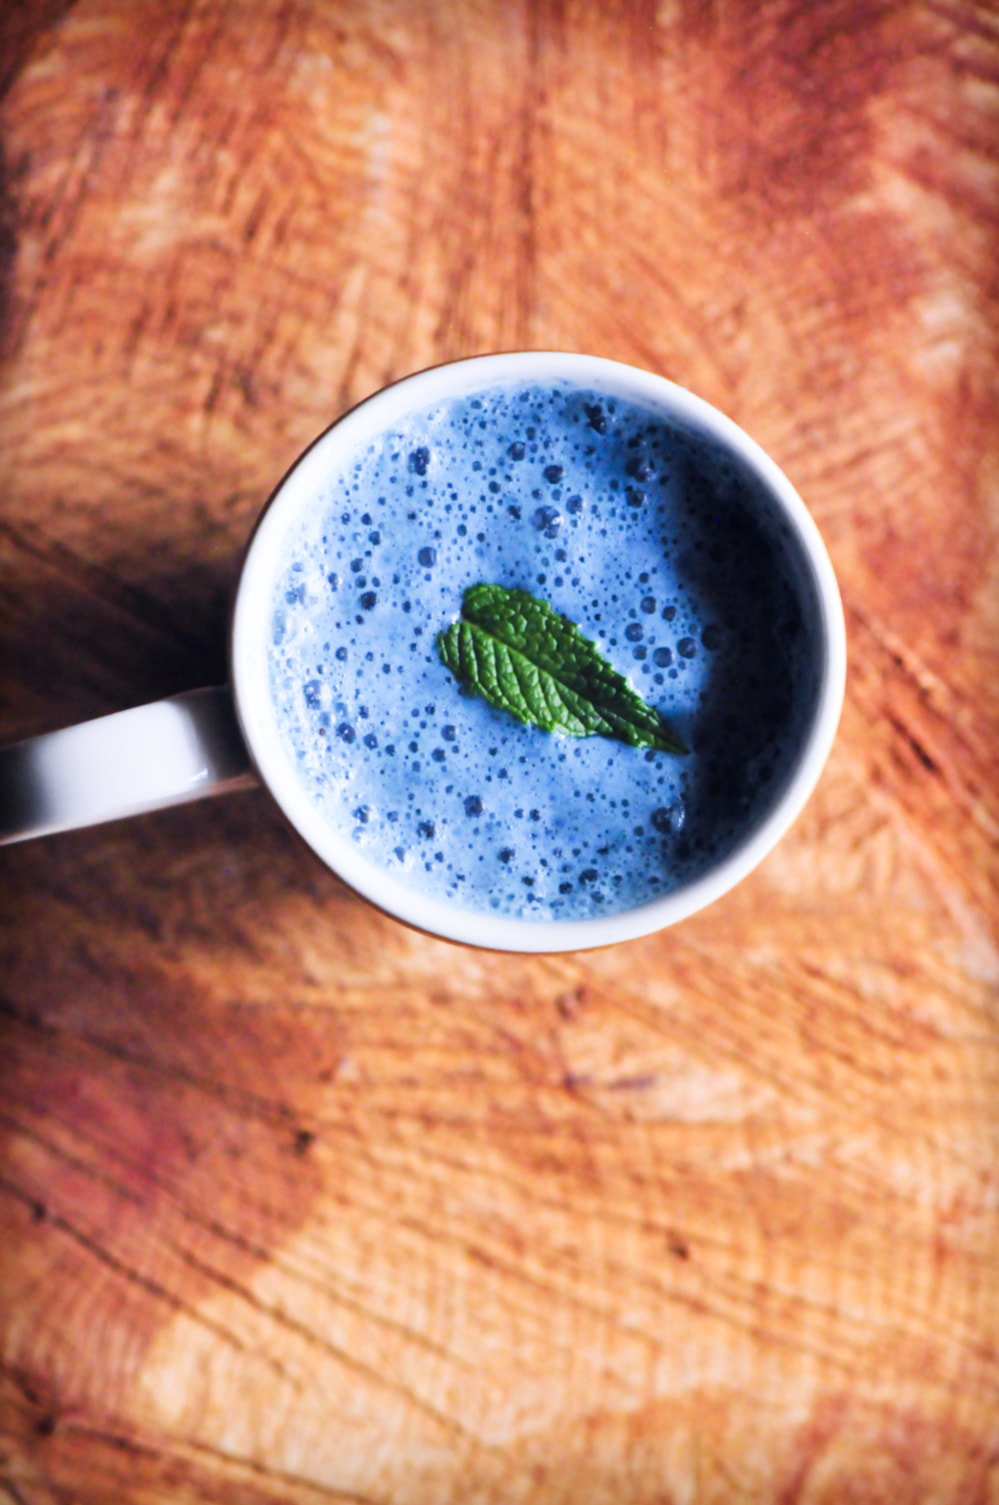 This gluten-free & vegan Double Blue Peppermint Moon Milk makes for one soothing & delicious antioxidant-rich brew perfect for those stressful days and sleepless nights . #moonmilk #bluemoonmilk #blueberrymoonmilk #peppermintmoonmilk #sleepelixir #ayurveda #lechedeluna #bluebutterflypeapowder